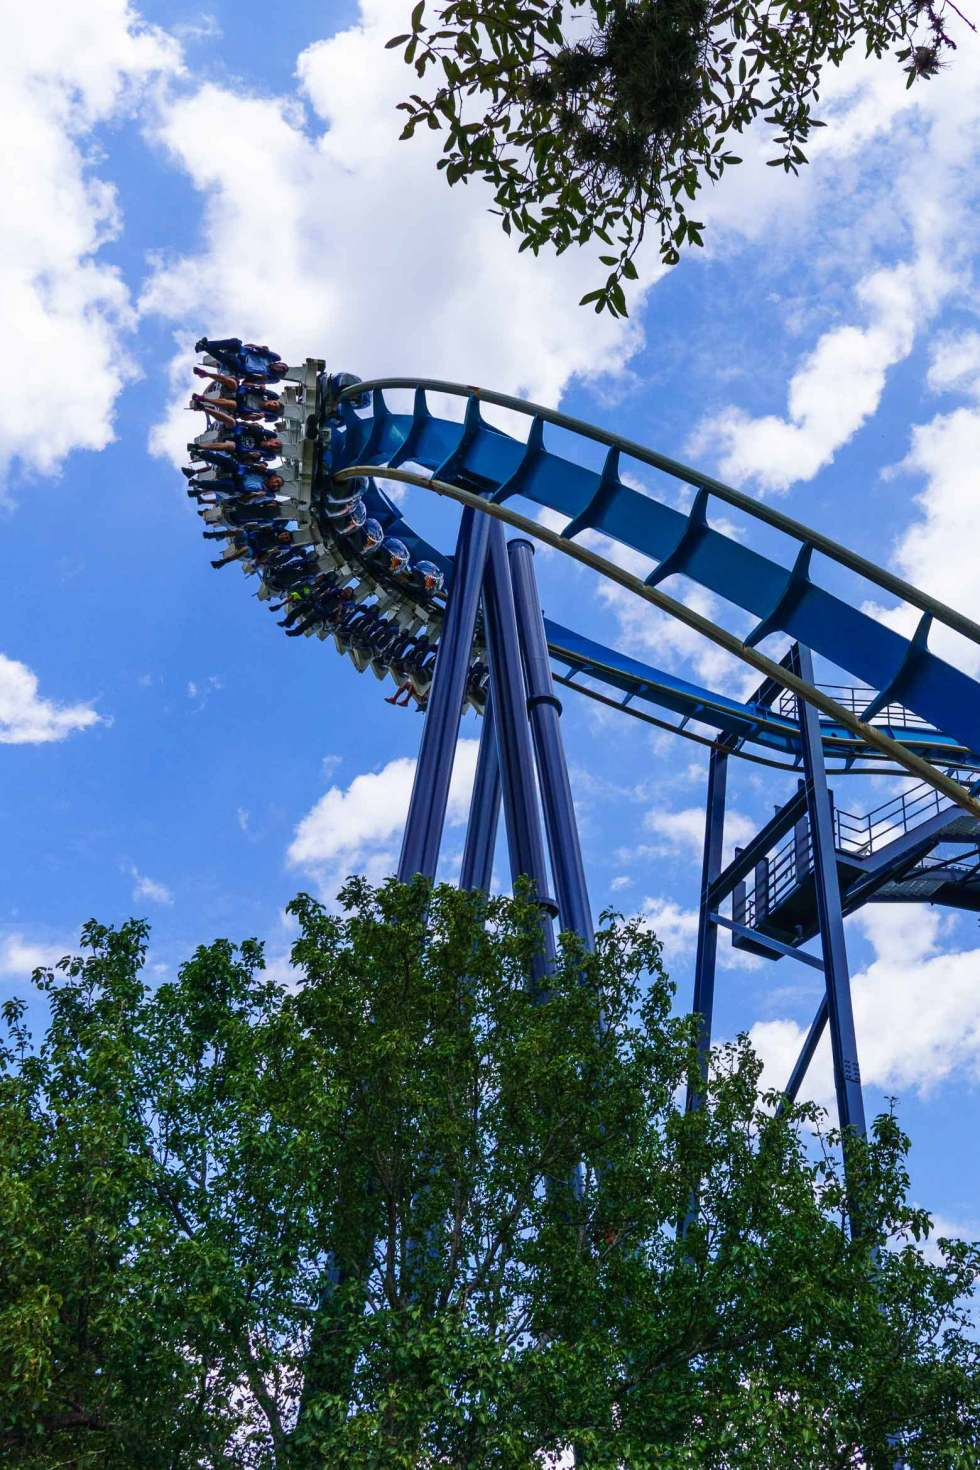 Have you been to SeaWorld San Antonio recently? Come see what the major changes are from then to now!